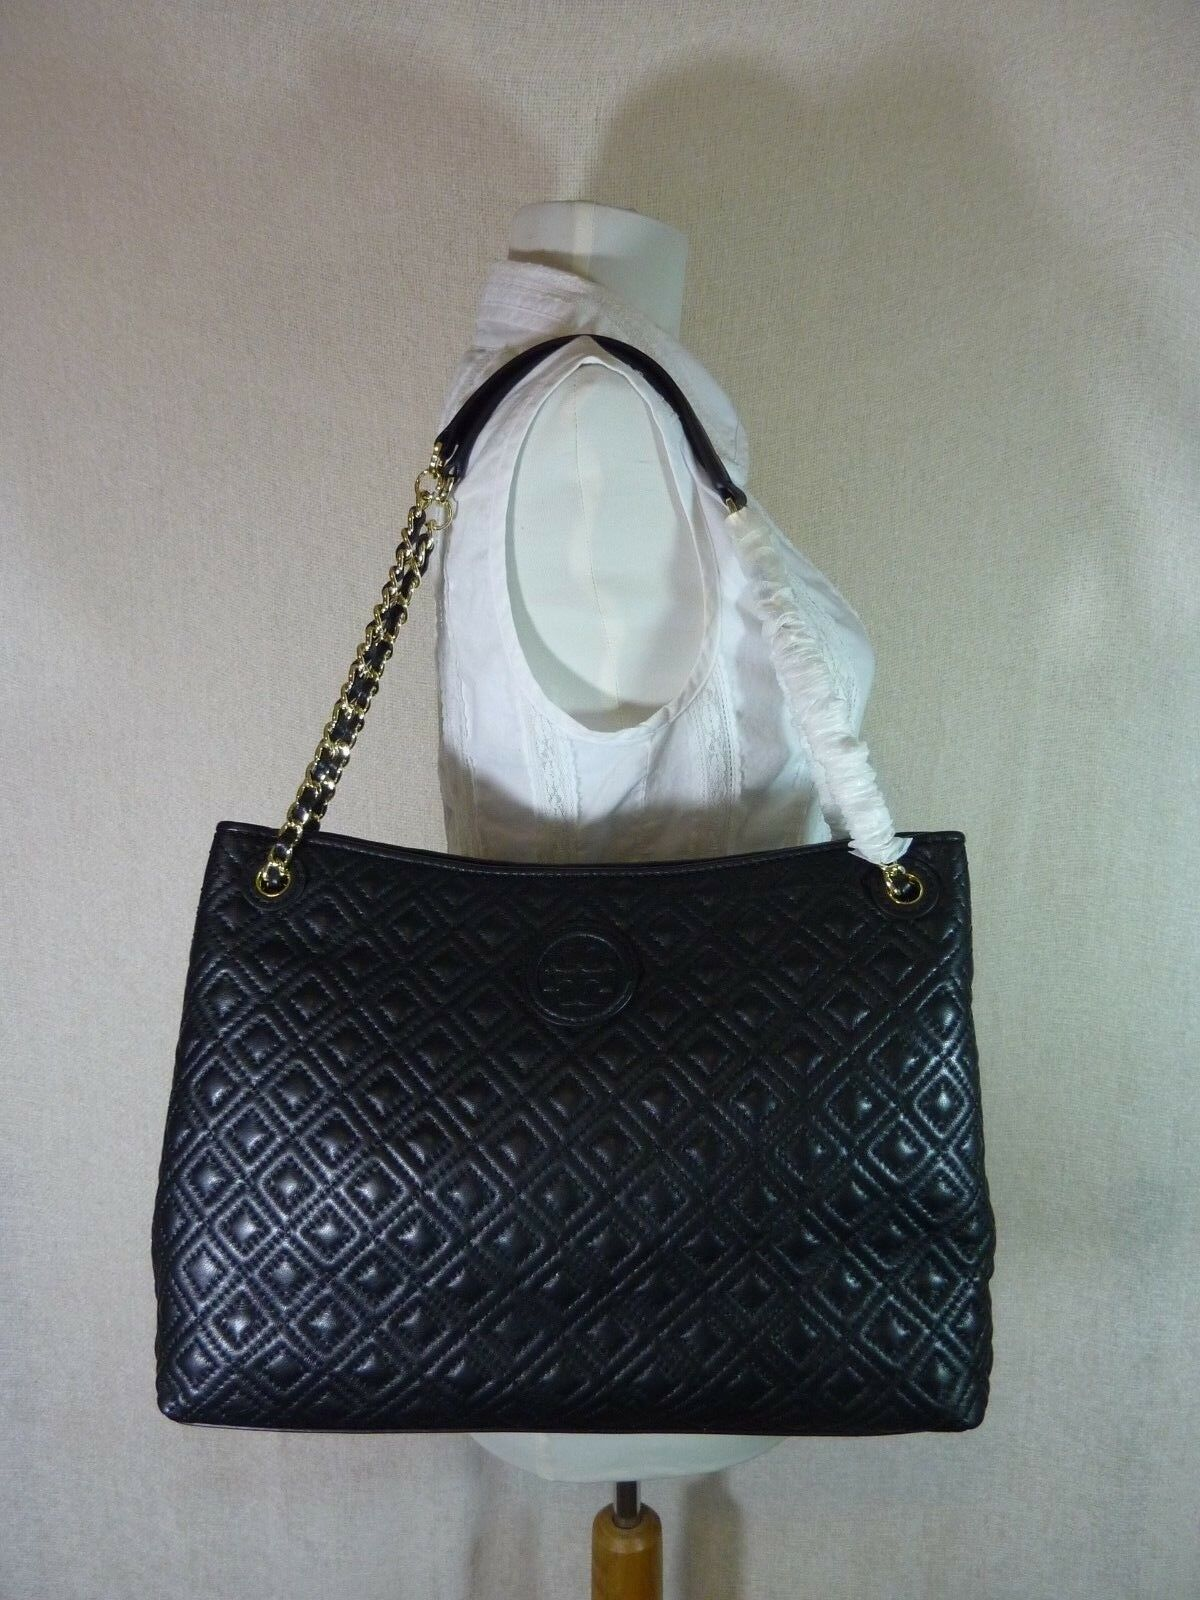 550 Tory Burch Marion Tote Purse Handbag Quilted Chain Hand Bag ... : black quilted chain bag - Adamdwight.com